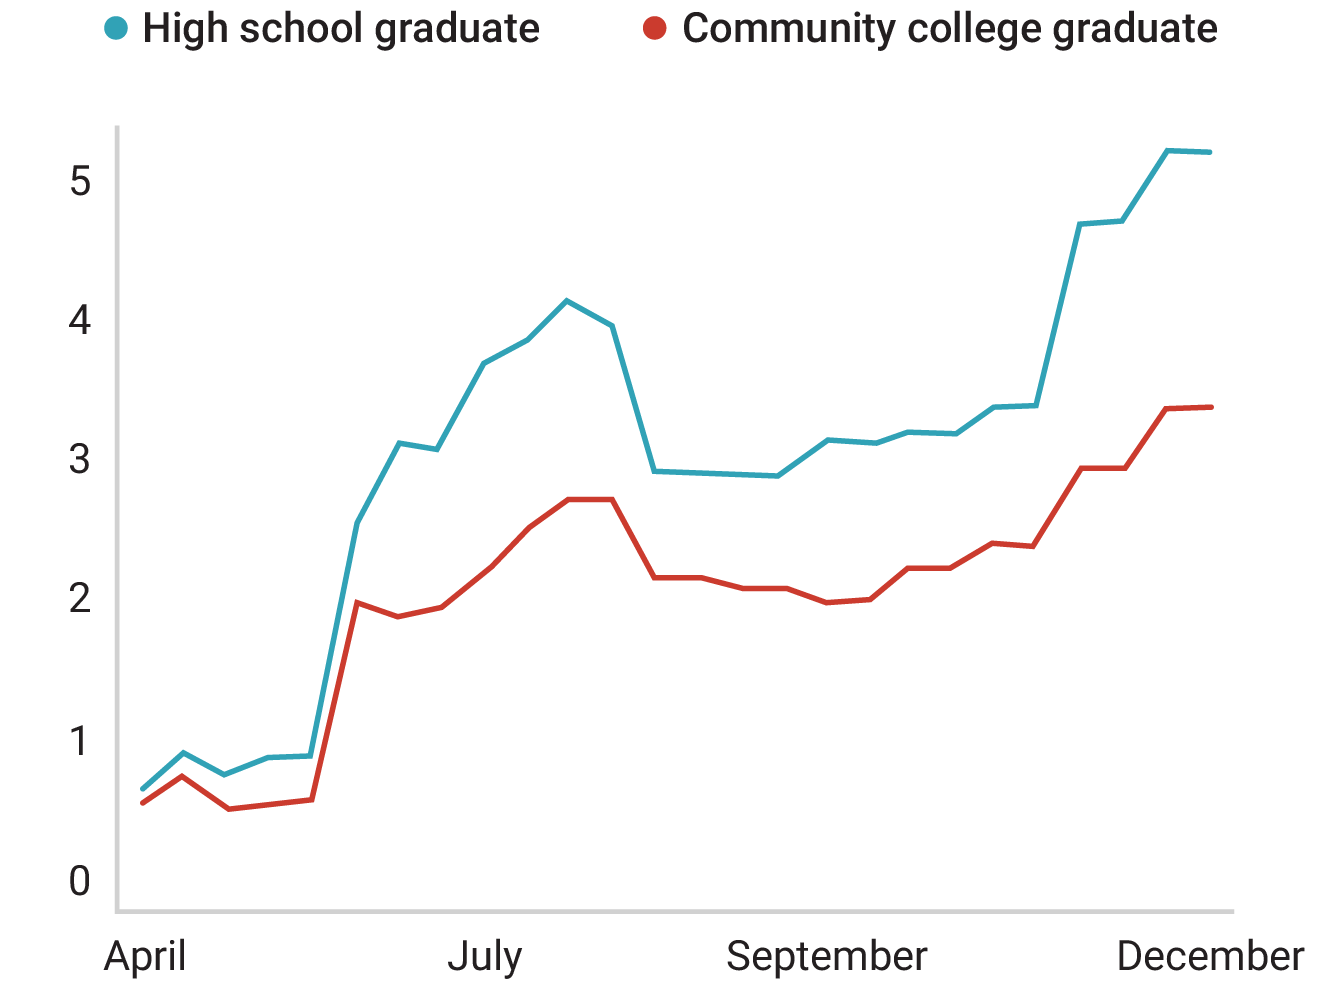 A larger percentage of high school graduates than community college graduates had their work directly affected by COVID-19.